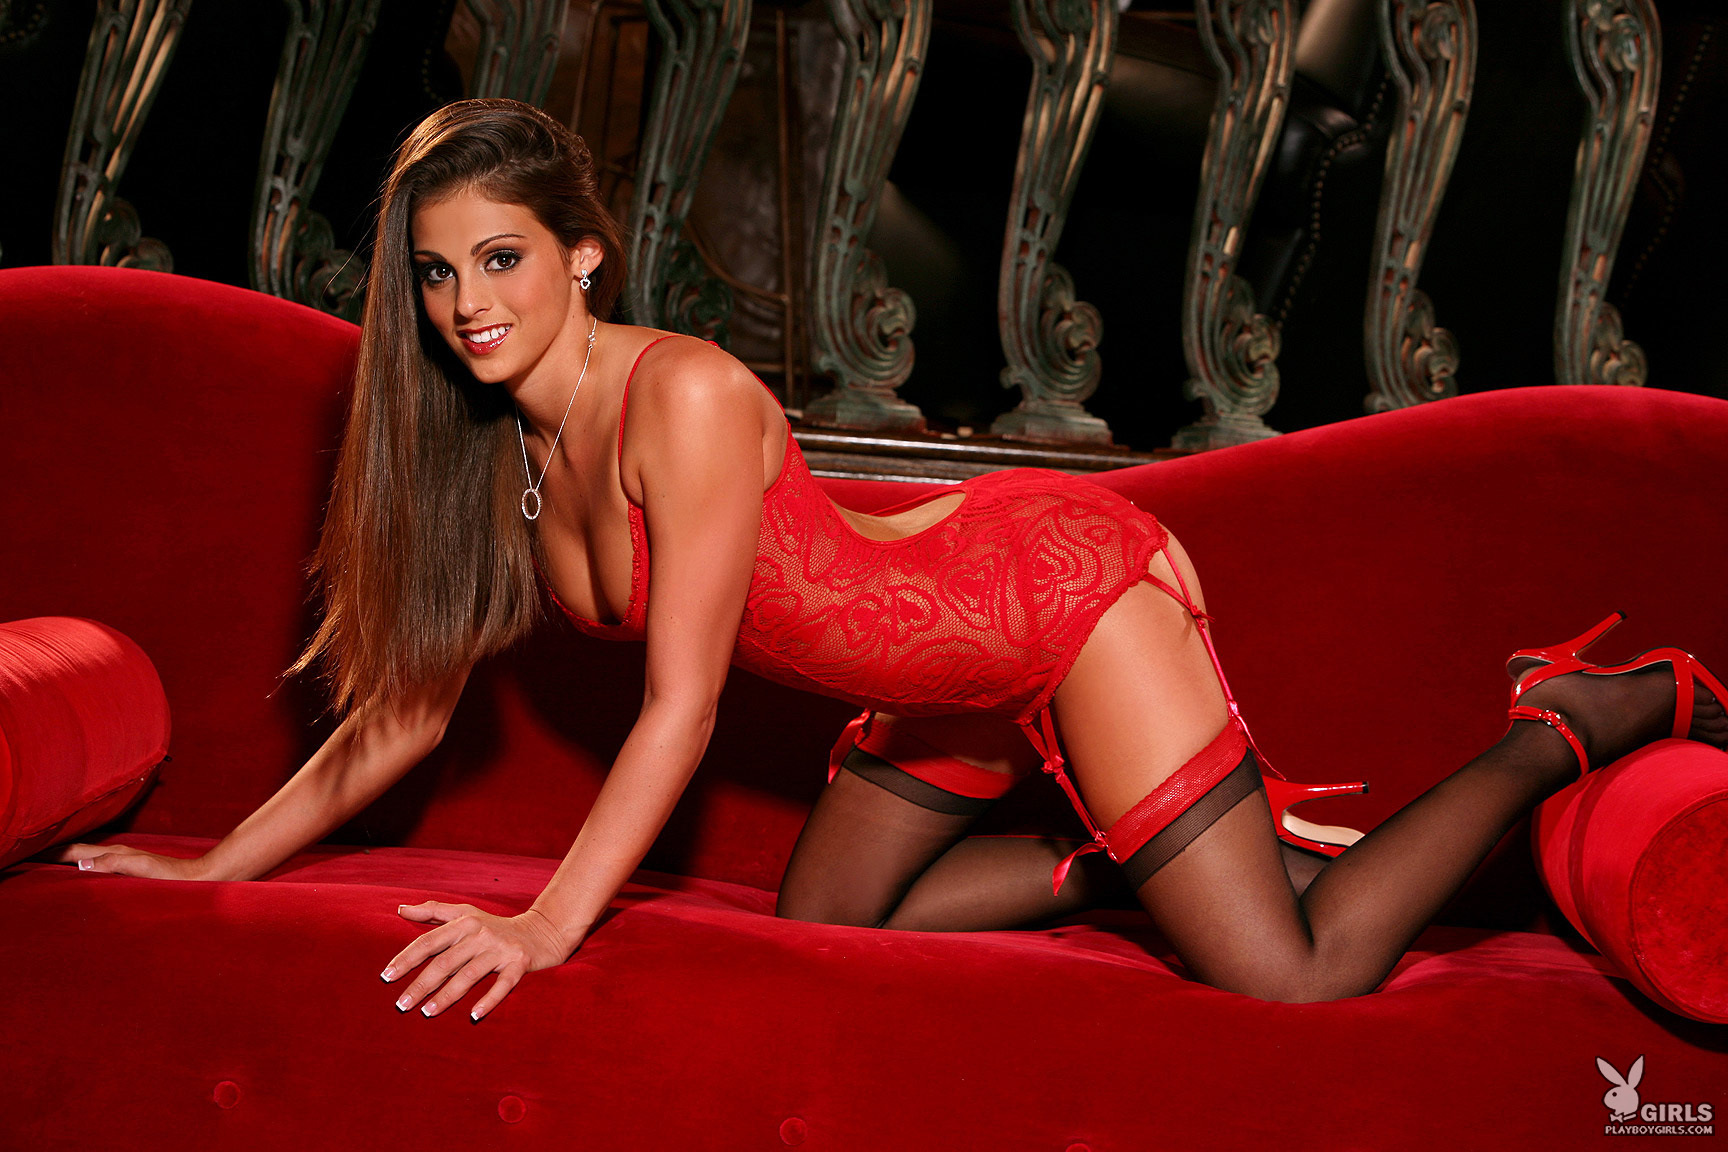 lacey-alexandra-red-nighty-stockings-naked-playboy-01